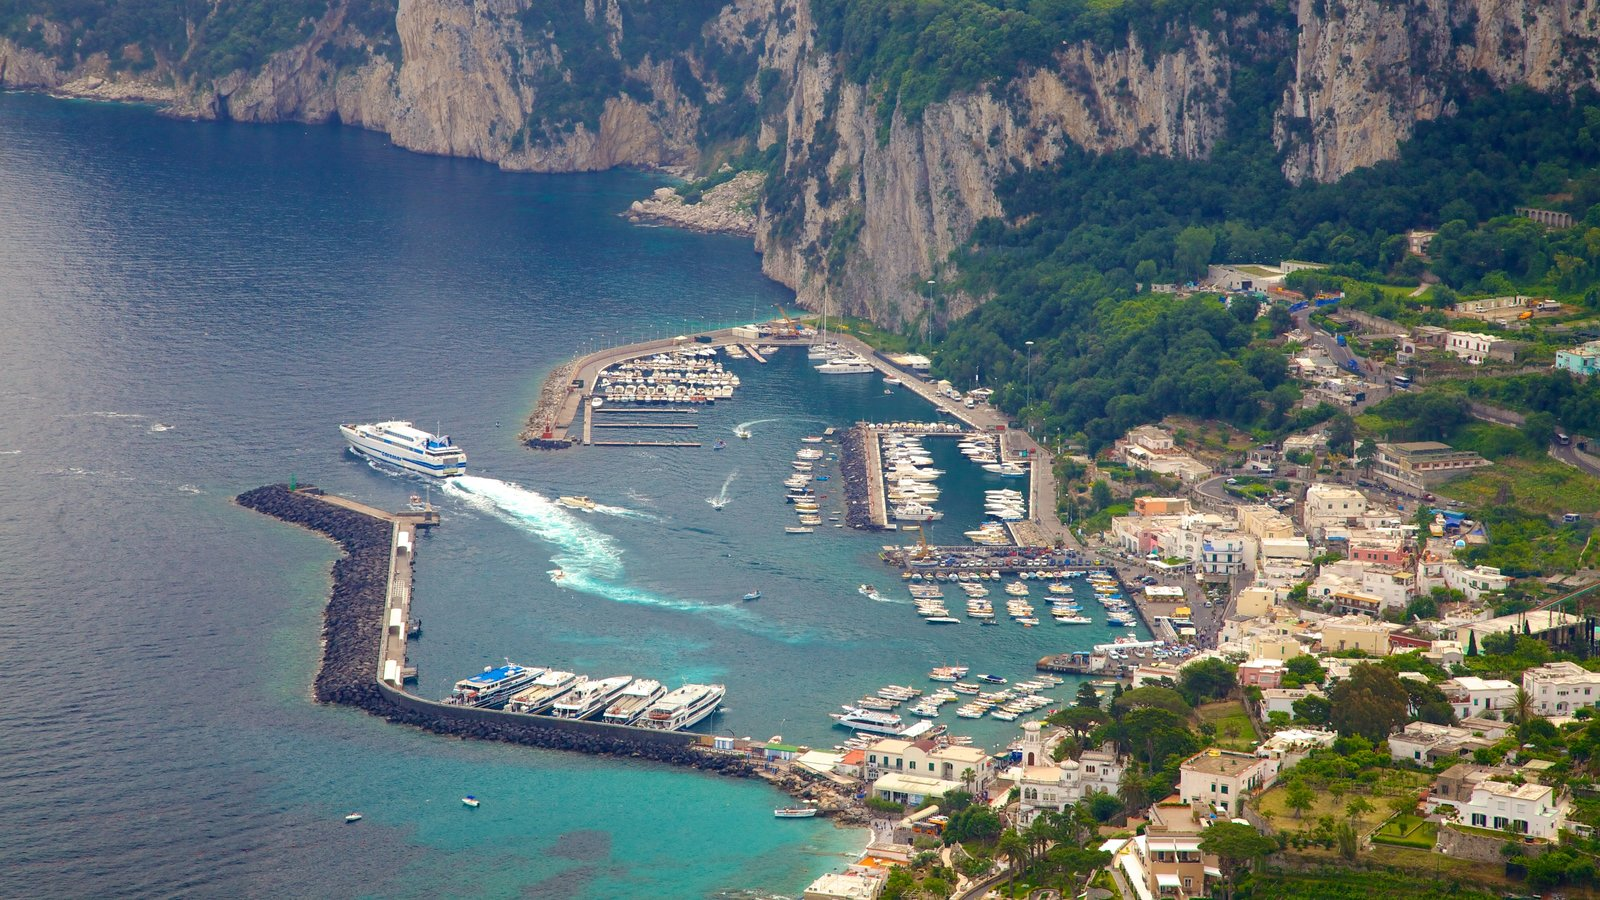 Villa San Michele which includes boating, a coastal town and a bay or harbor